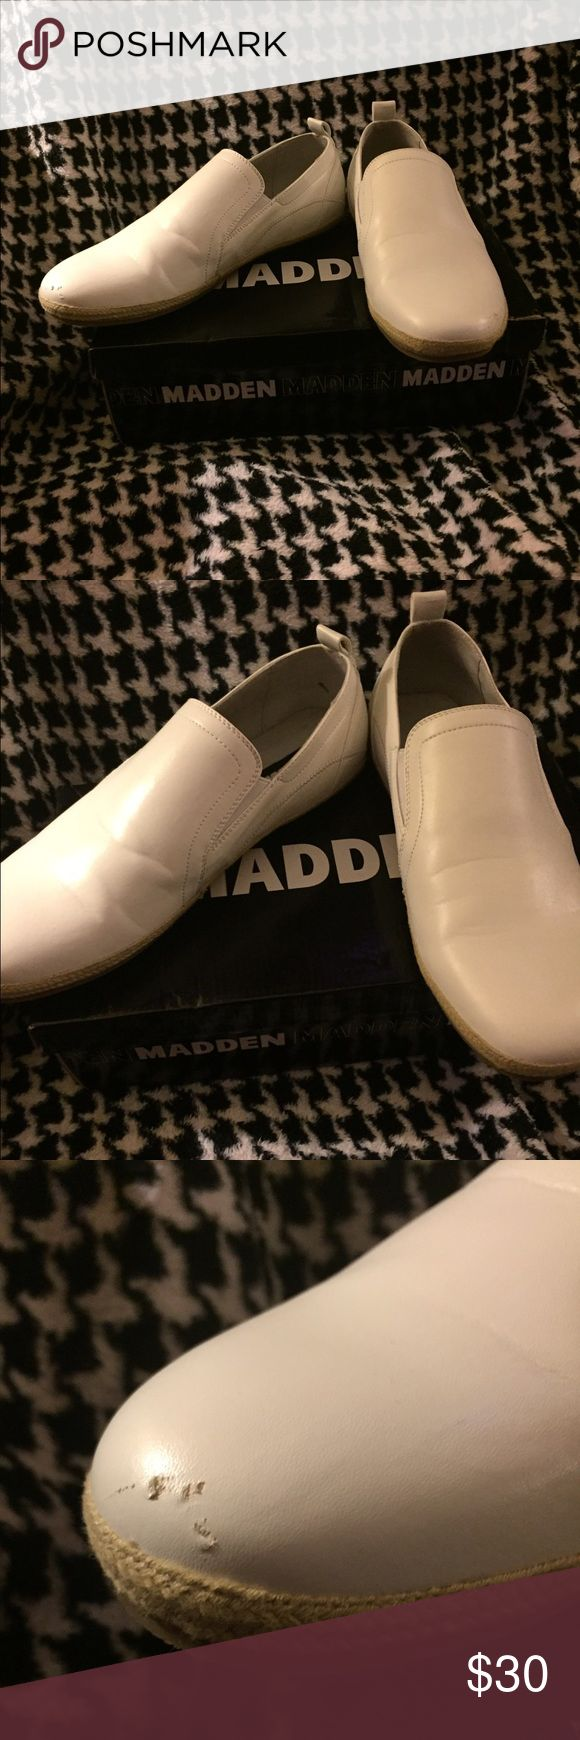 Steve Madden M-Gamble Men's Shoes Steve Madden M-Gamble Men's 11M White Slip On Shoes. Only Worn Once In a Wedding But There Are Some Scuff Marks On Both Shoes In The Toe Area as Shown in The Pictures. Steve Madden Shoes Loafers & Slip-Ons